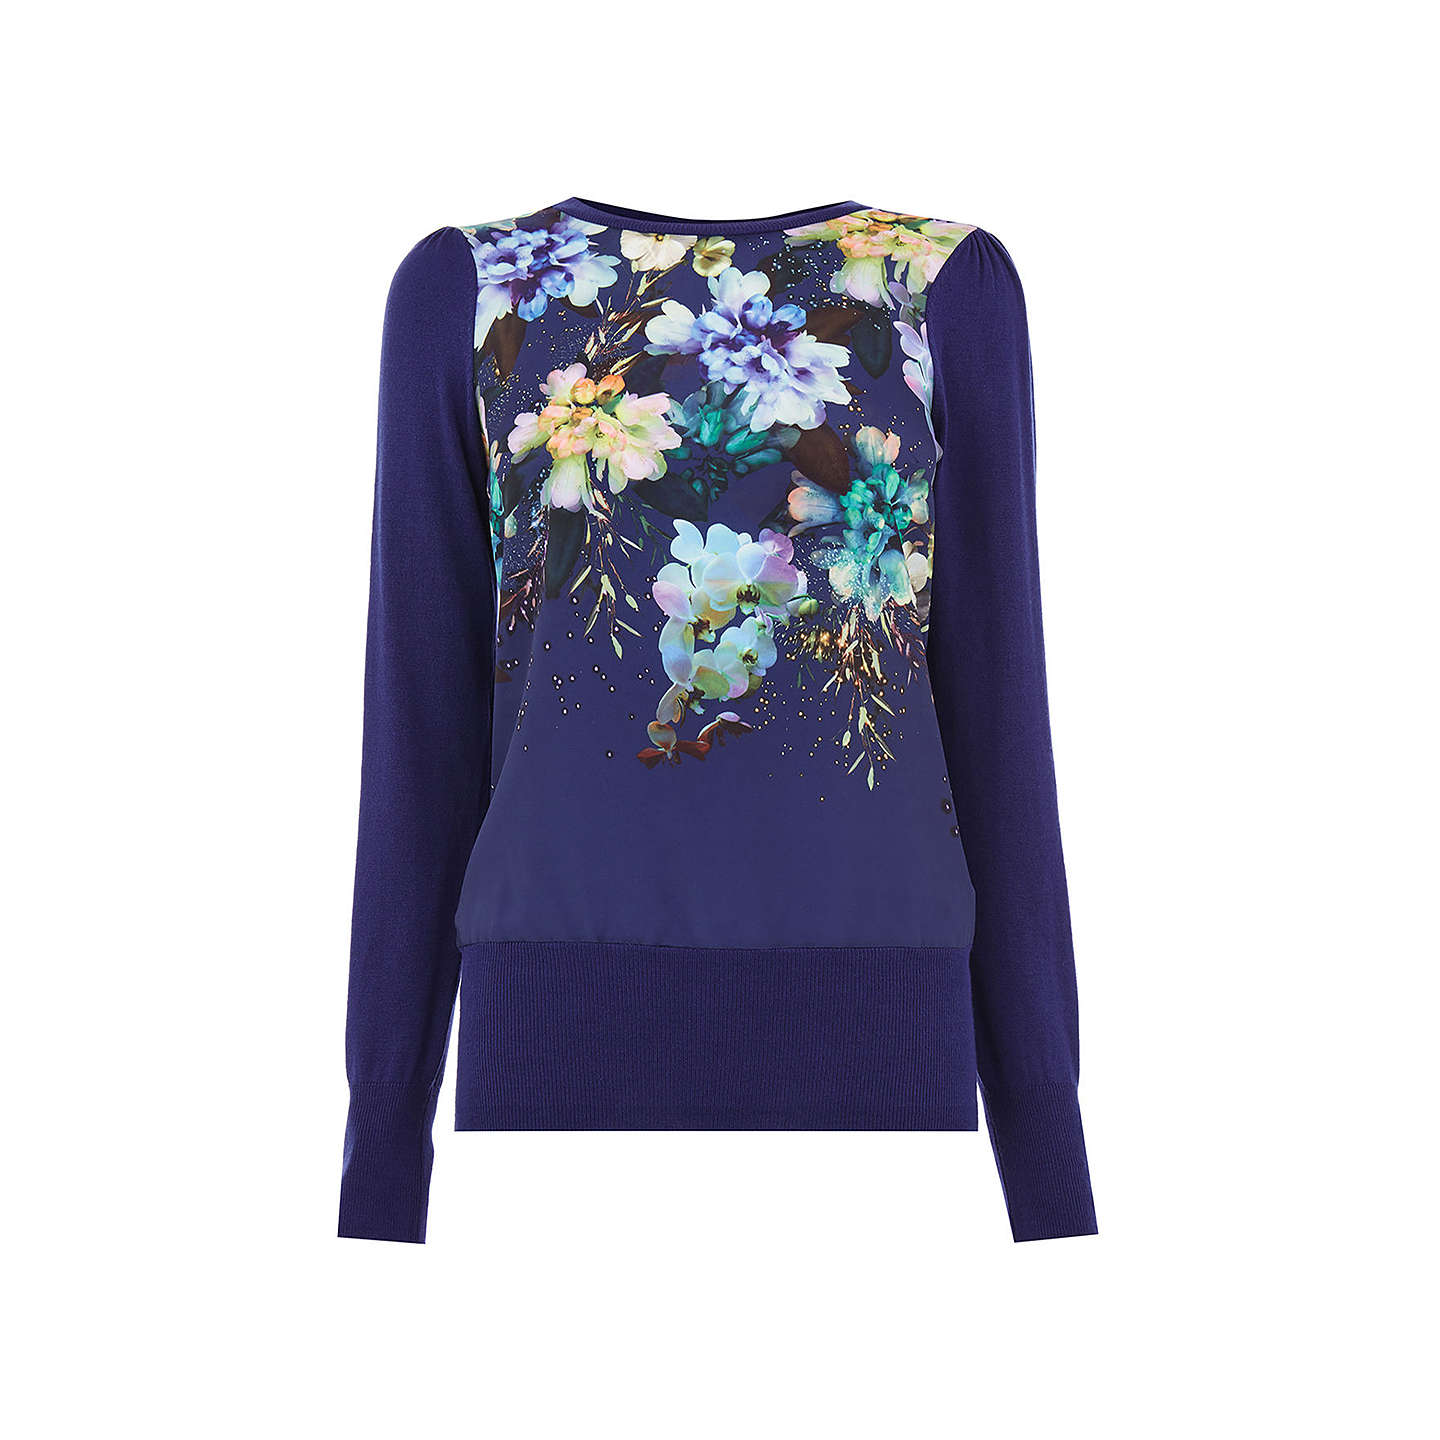 BuyOasis Fairytale Woven Front Knit Jumper, Rich Blue, XS Online at johnlewis.com